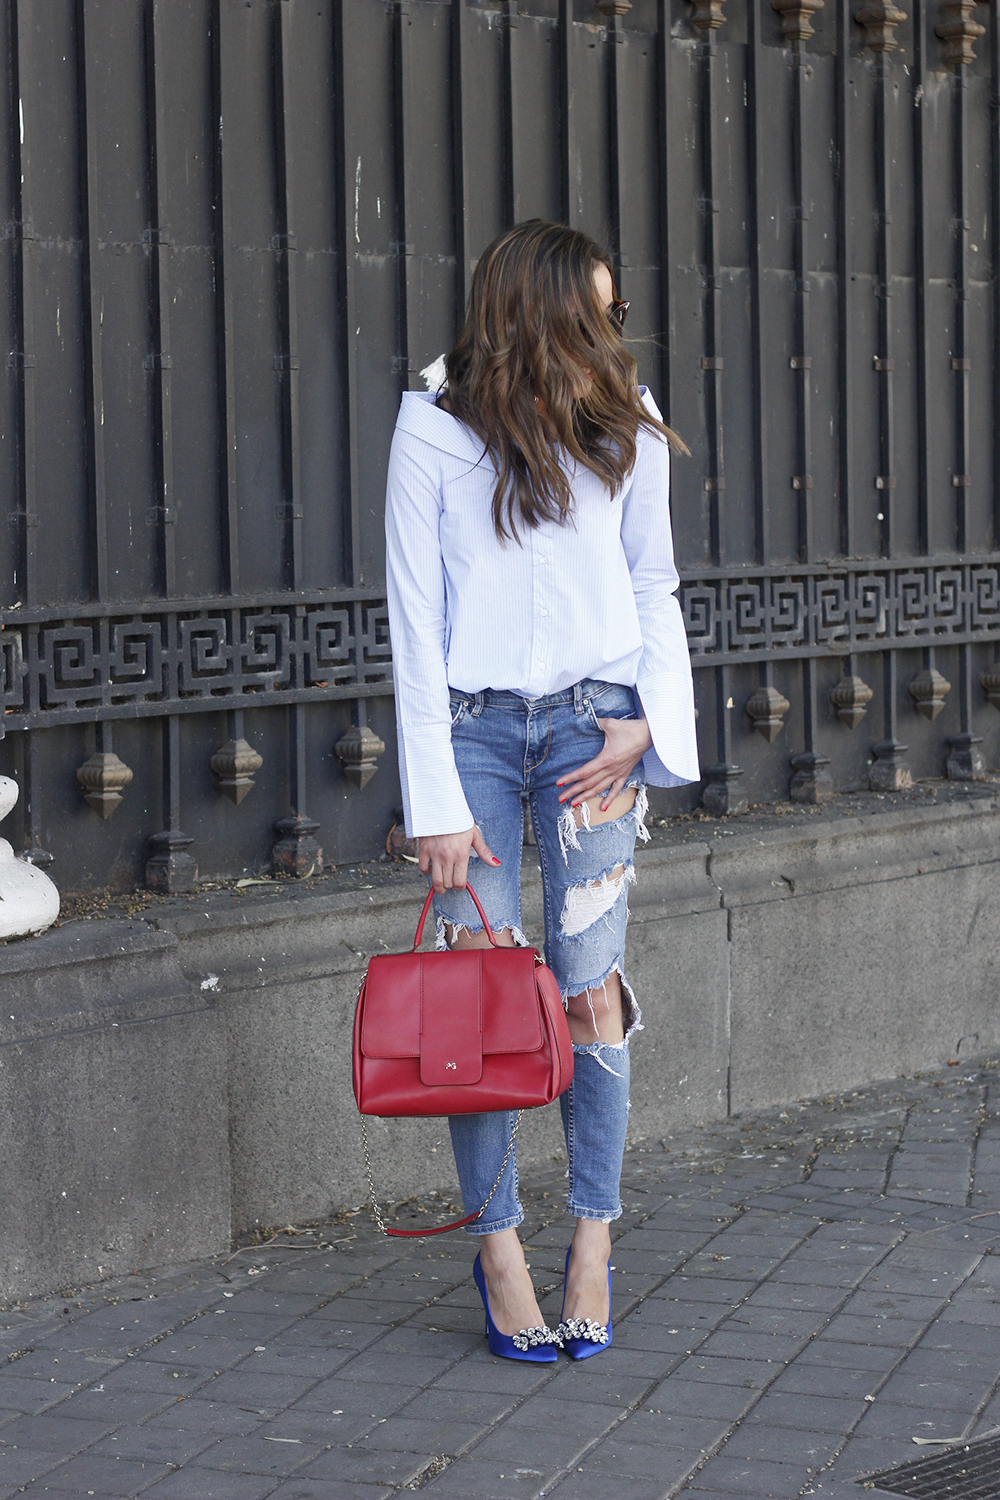 blue klein jewel heels uterqüe ripped jeans striped shirt red bag outfit style fashion03